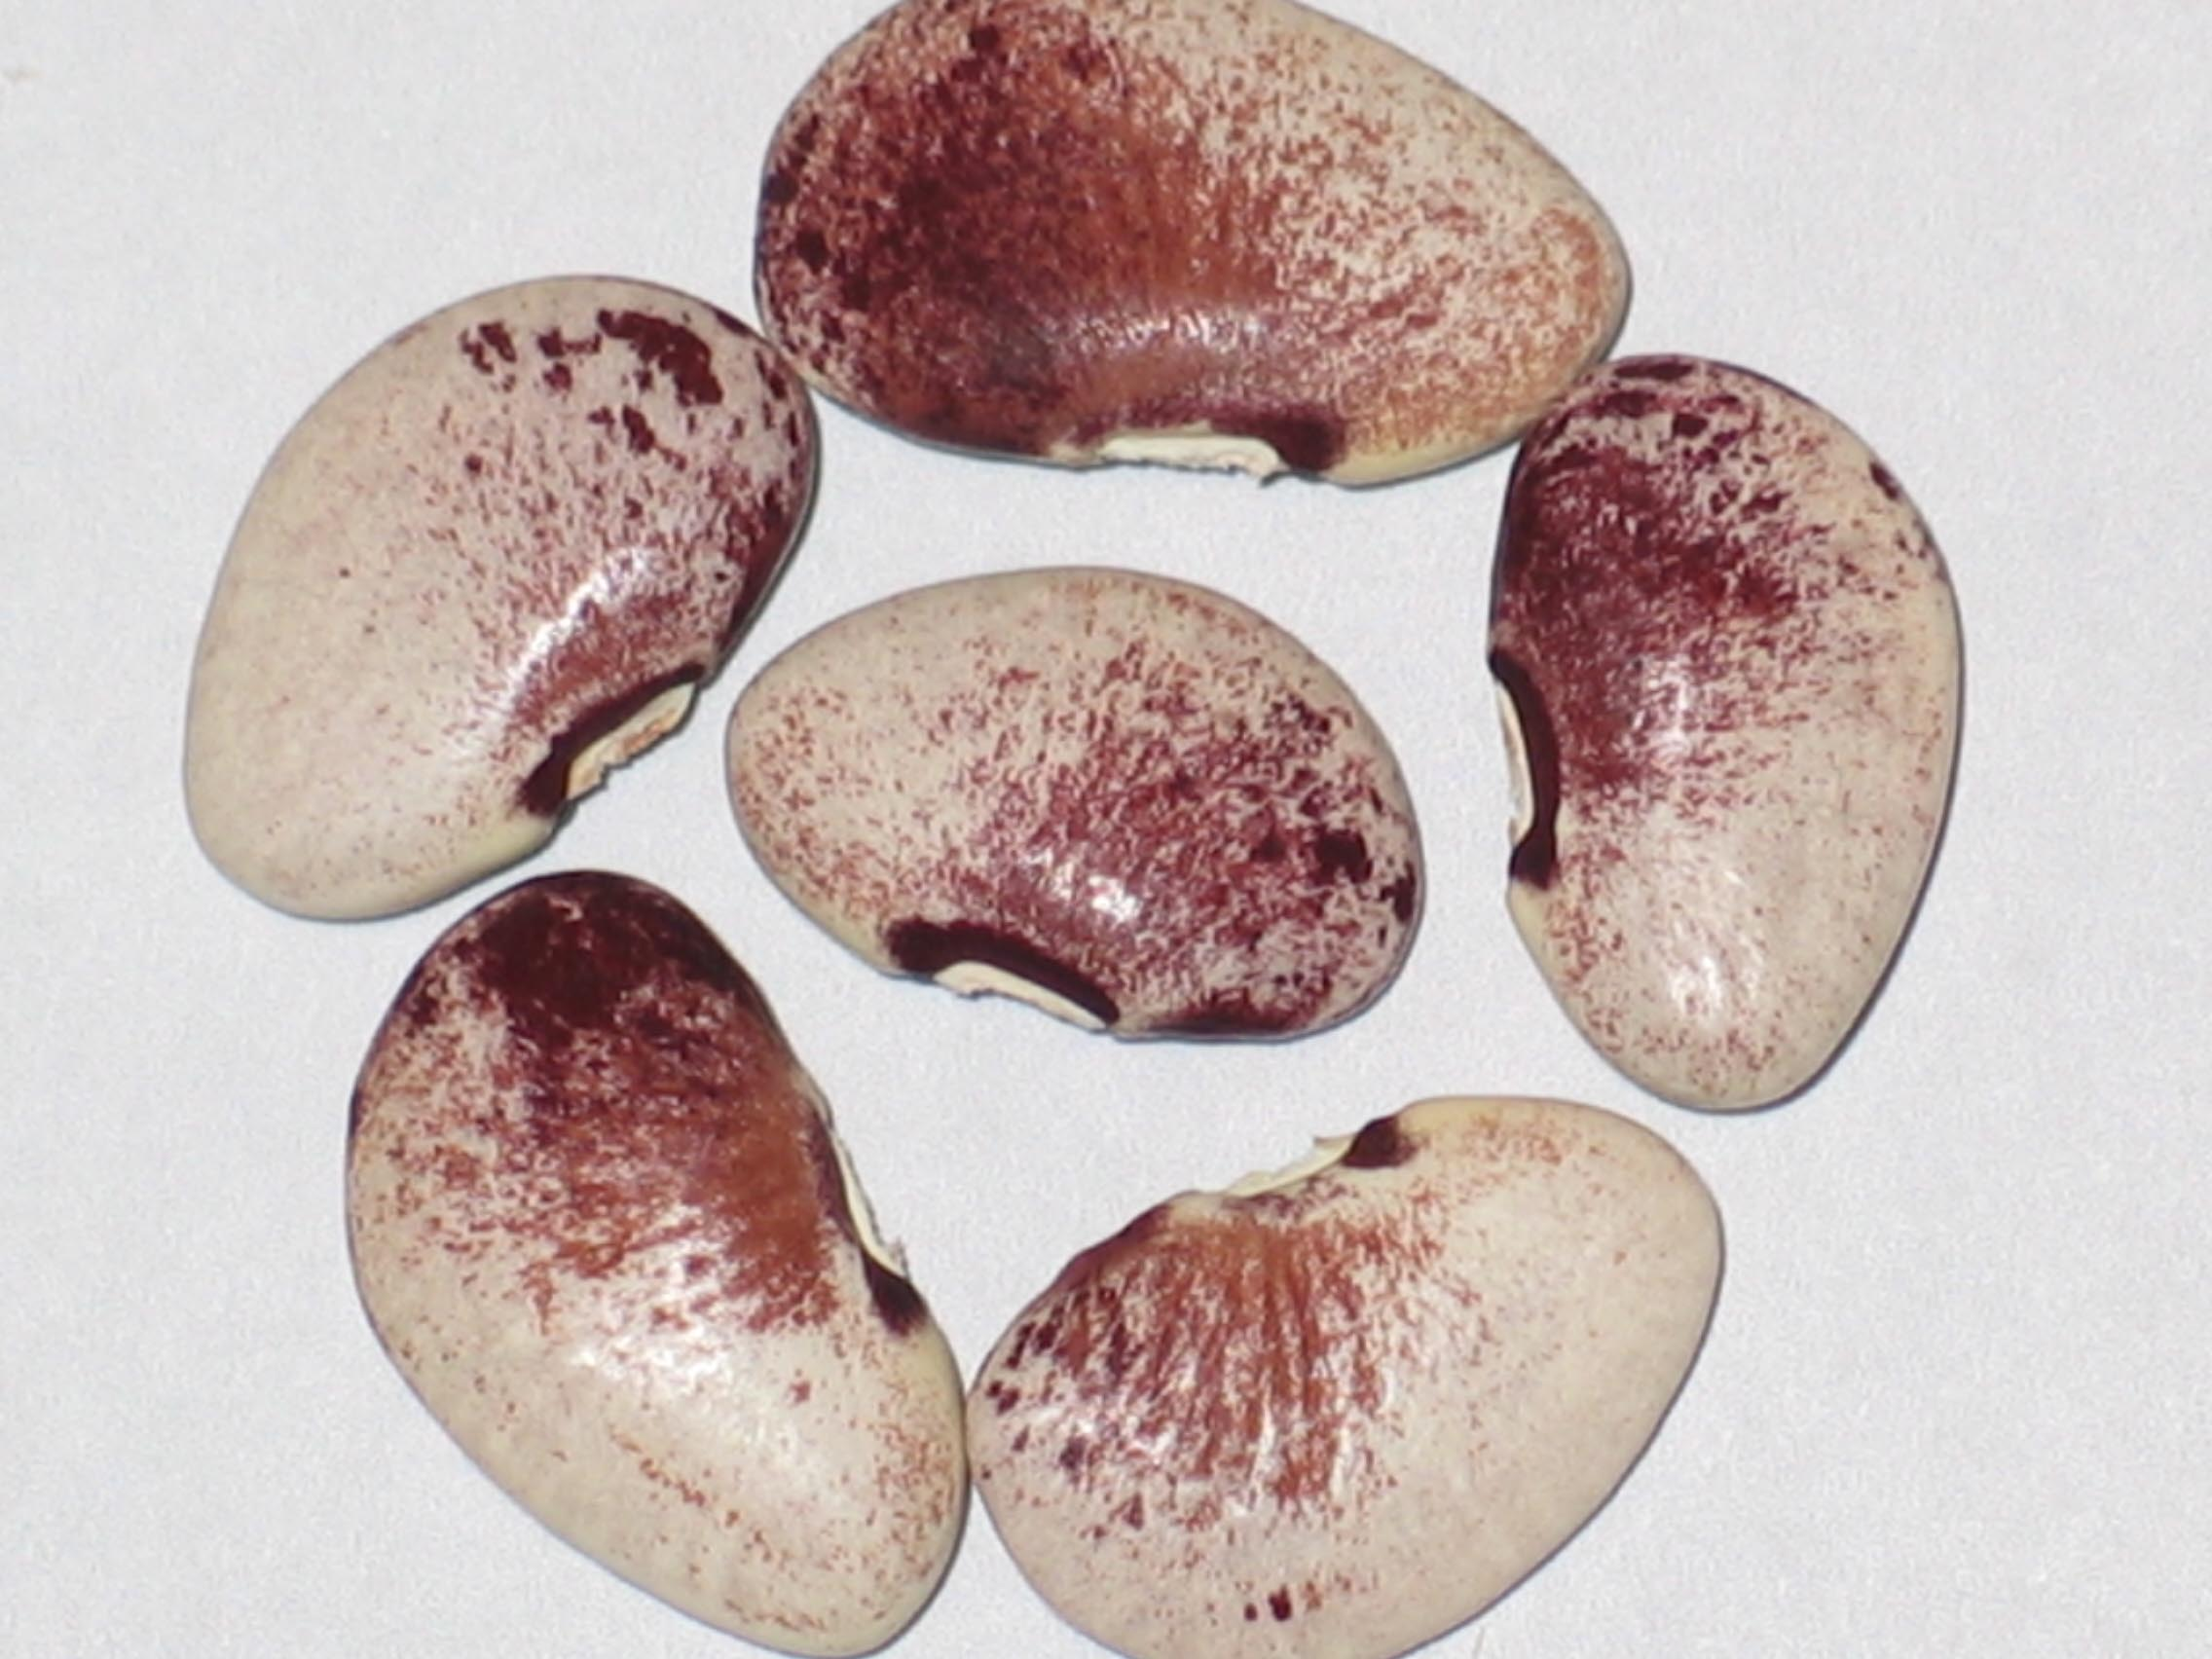 image of North Star beans